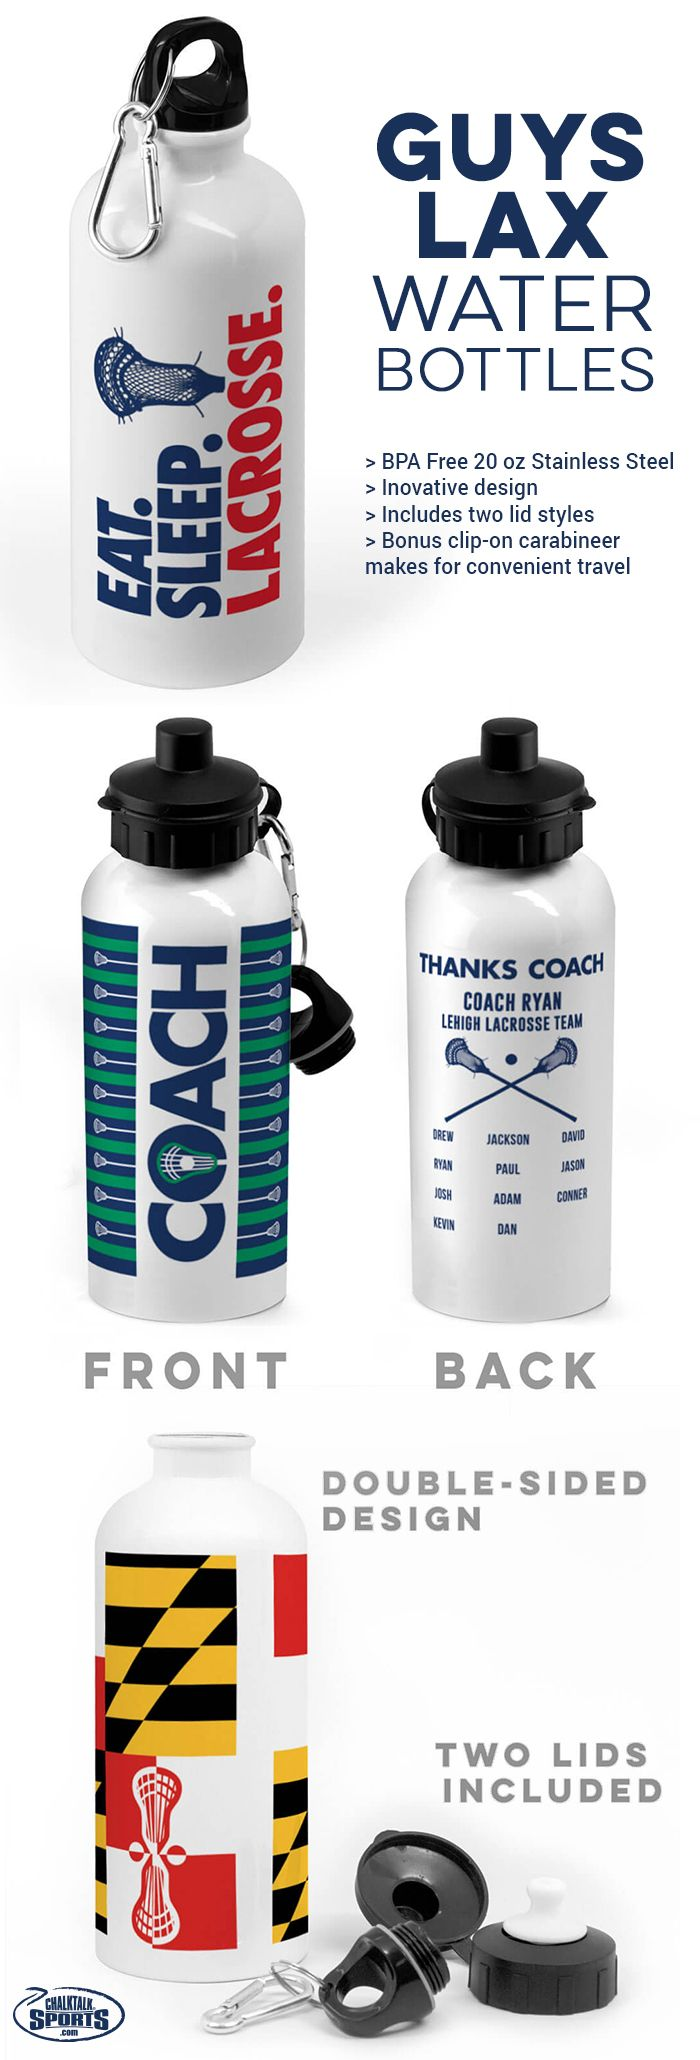 Our guys lacrosse water bottles make great gifts for players, parents and coaches! Choose from dozens of designs, colors, and personalization options!